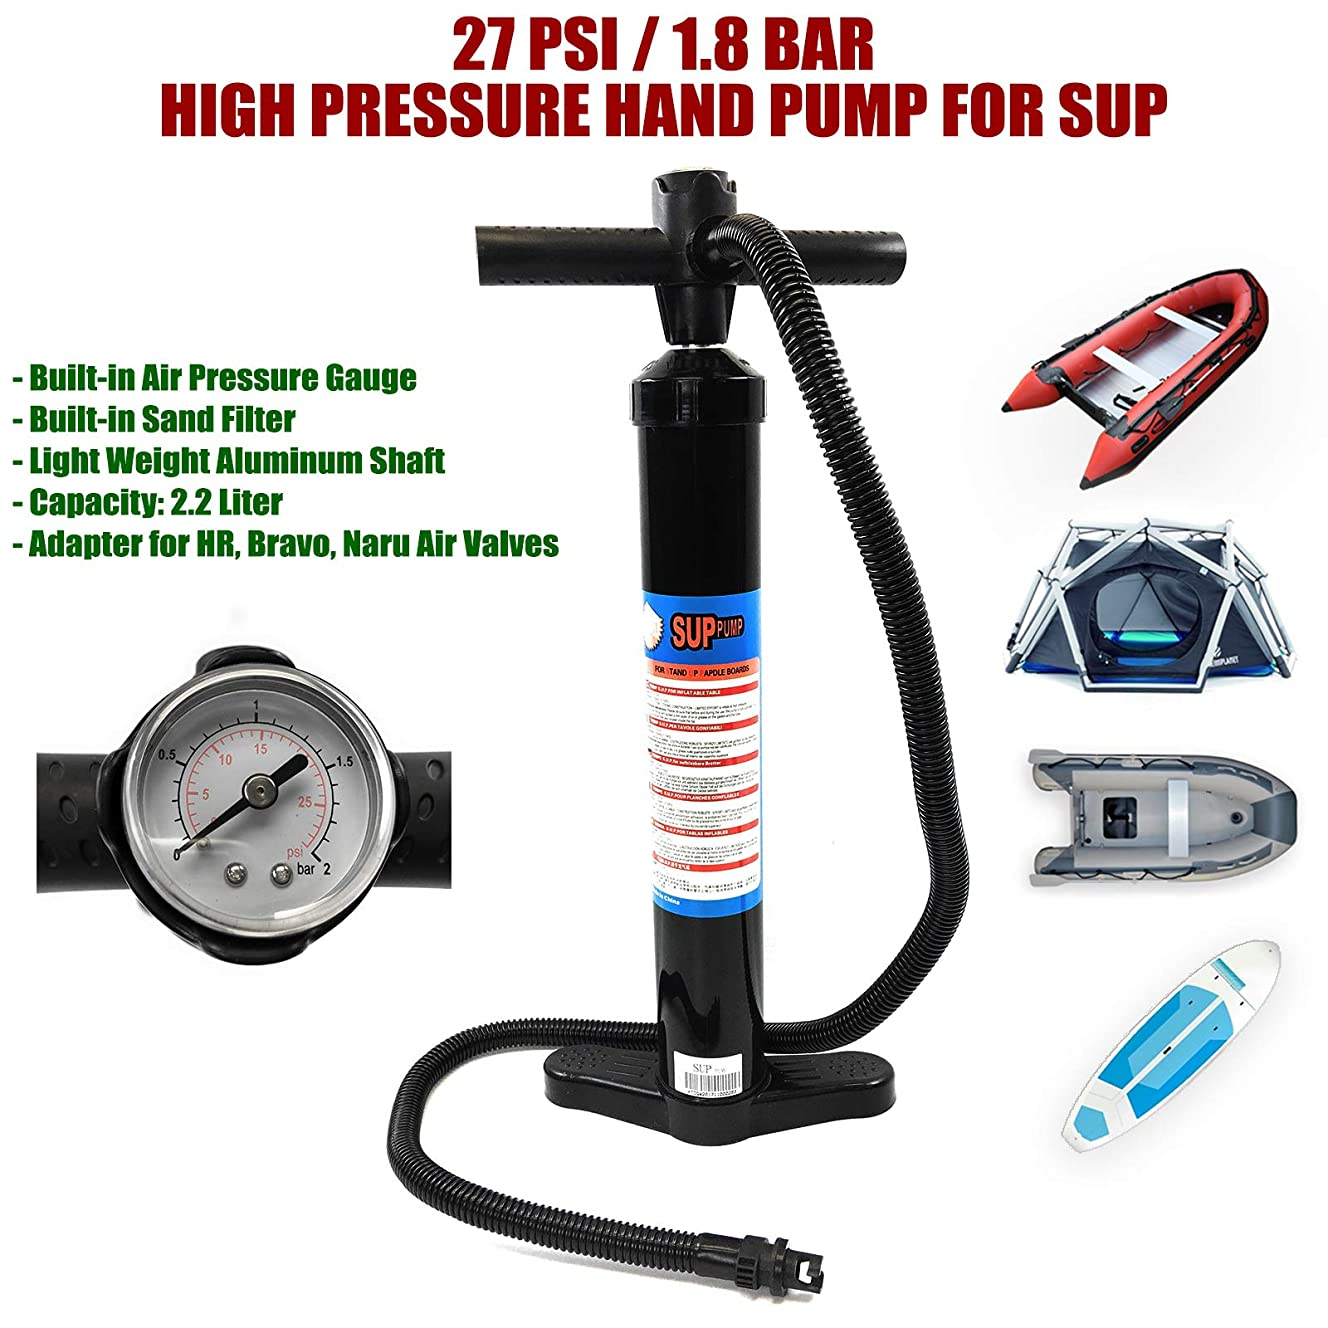 SEAMAX SUP Hand Pump Max 27 PSI, Light Weight to Carry, Good for All Inflatable Paddle Board and Inflatable Boat